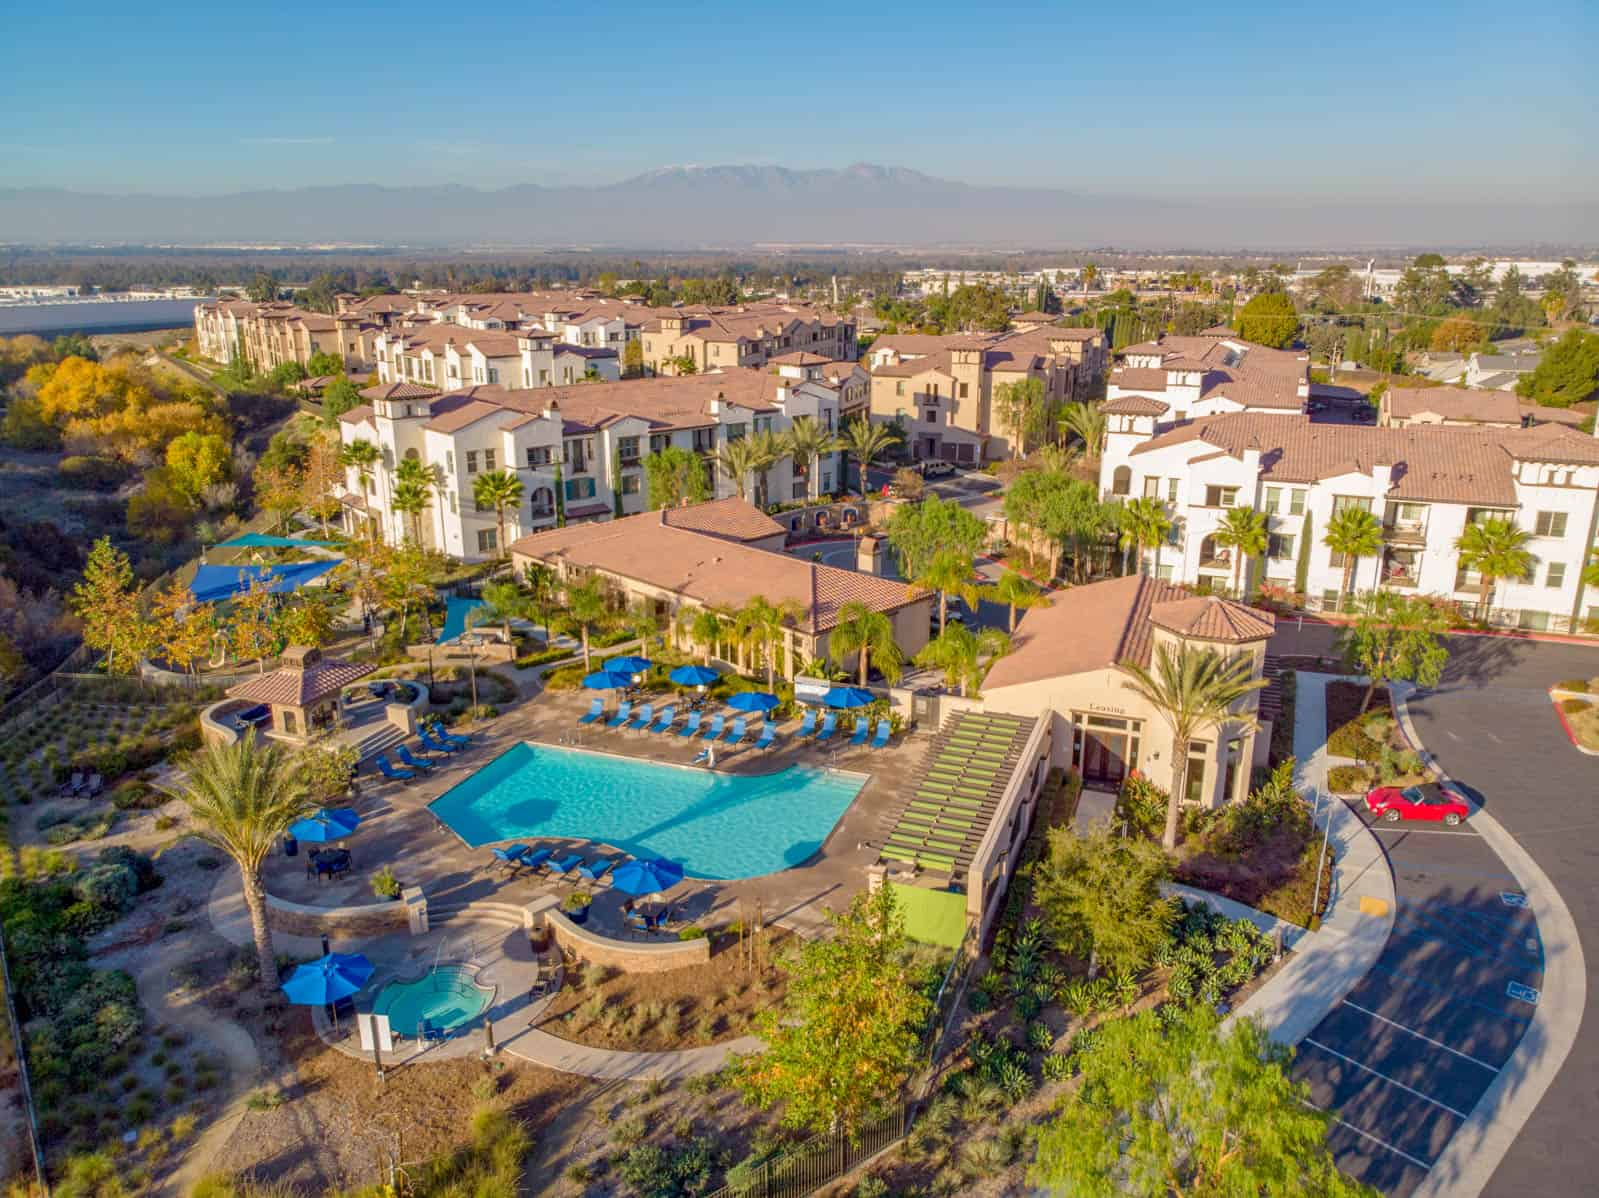 aerial drone photo of apartment community in Corona, CA with swimming pool in foreground